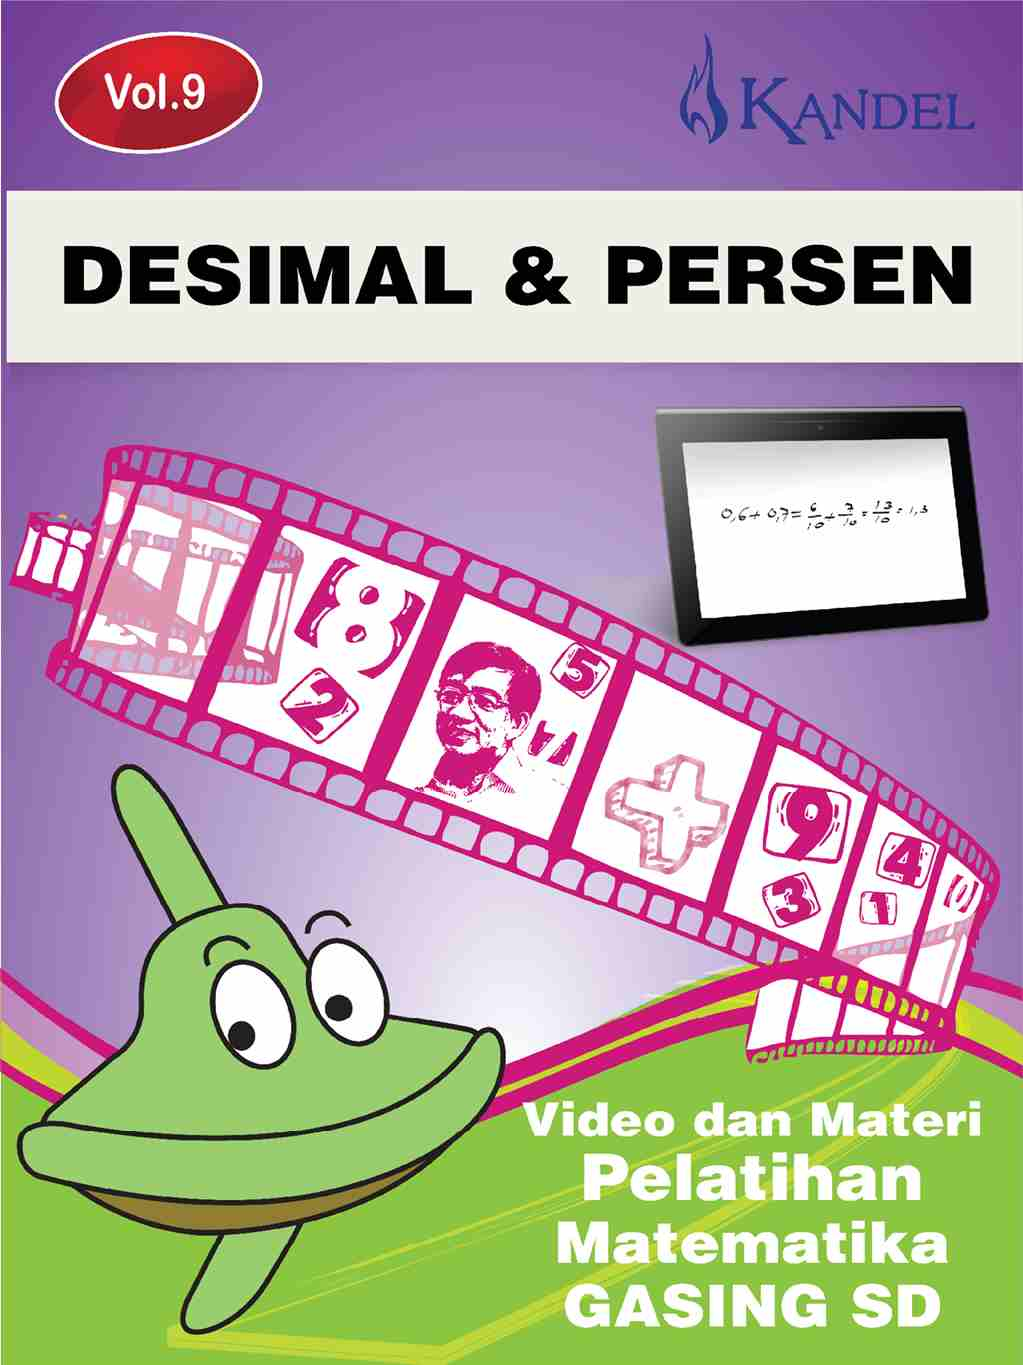 Vol 9 Video Tutorial Pelatihan Matematika Gasing - SD